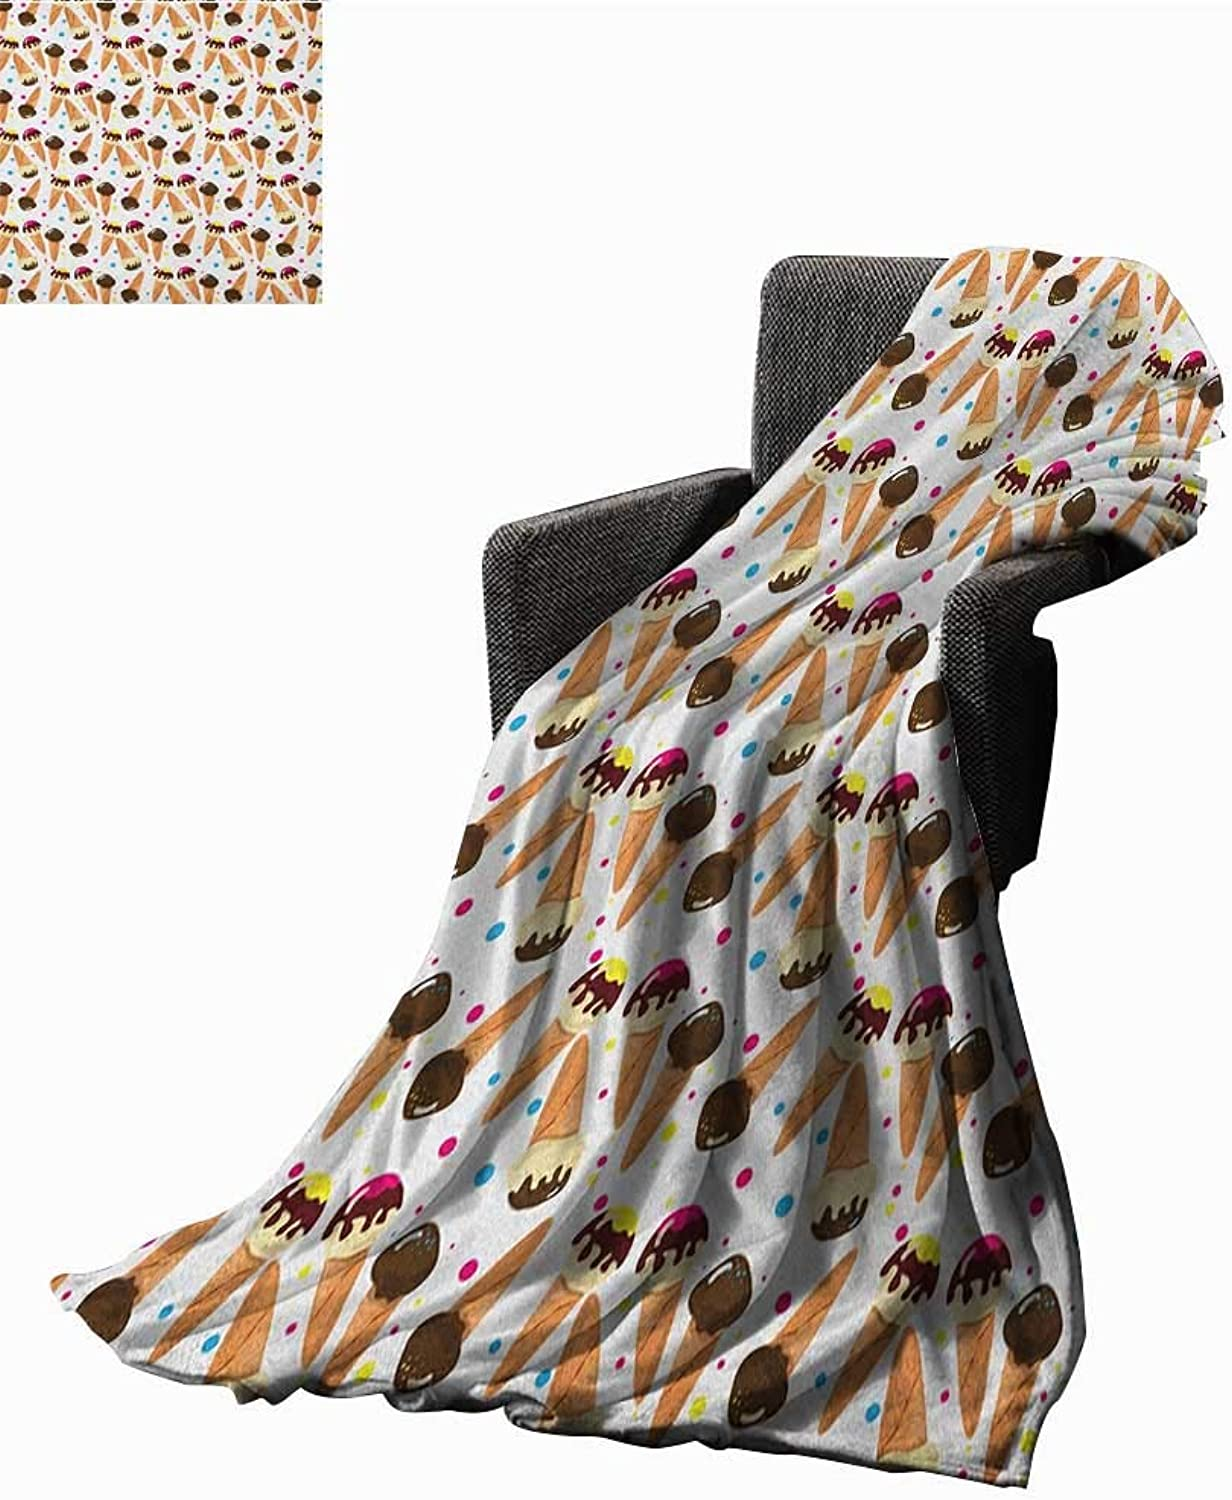 Sunsunshine Bed or Couch 60  x 35 Ice Cream Microfiber All Season Blanket Chocolate Covered Ice Cream with colorful Little Dots Frozen Desert Waffle Cones Lightweight All-Season Blanket Multicolor